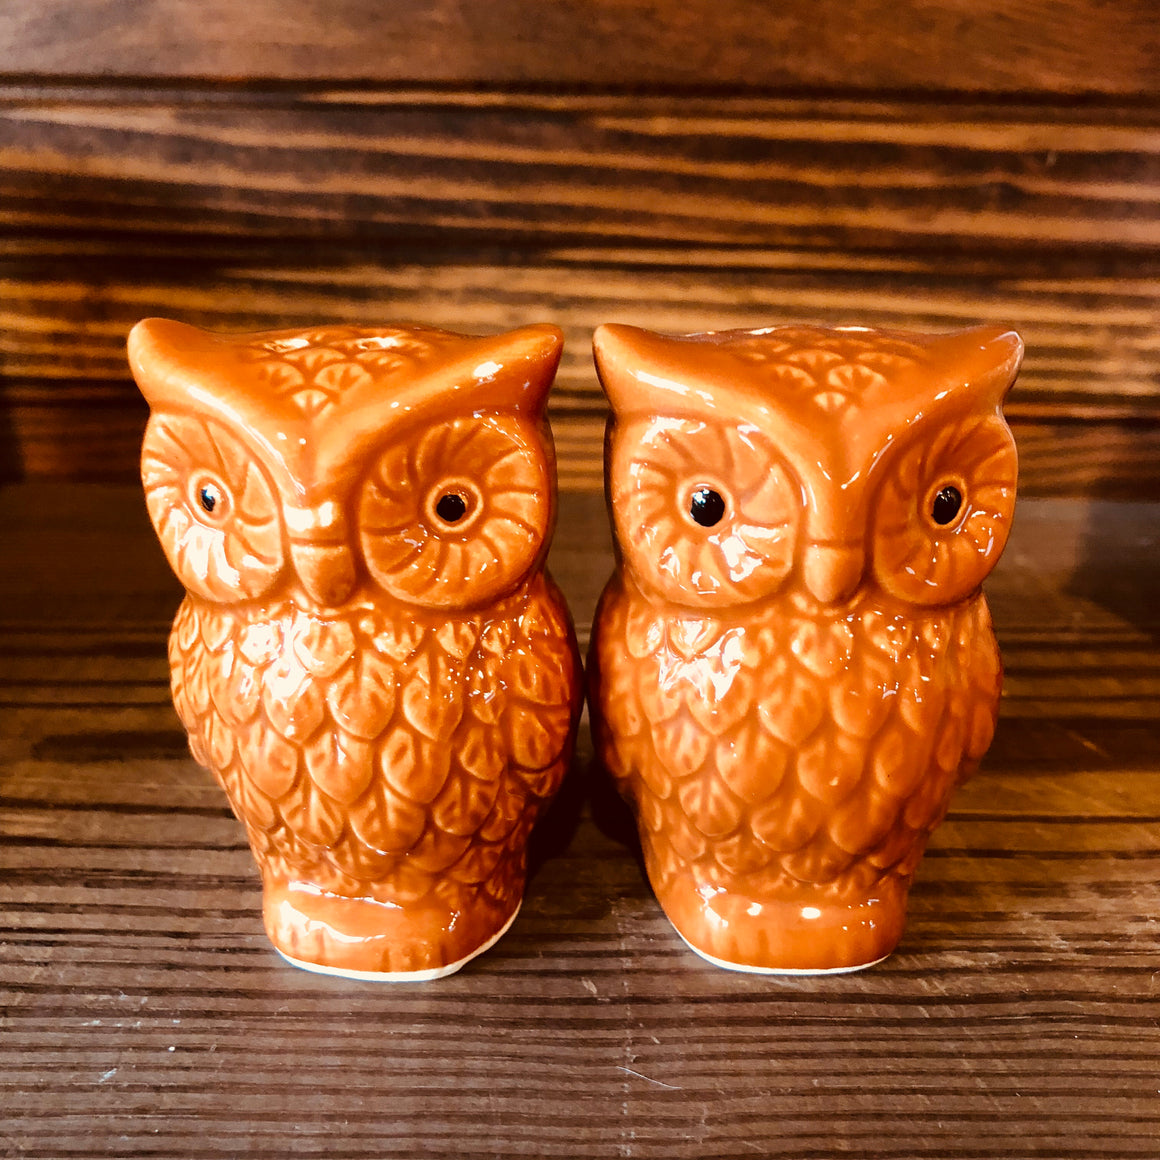 Salt & Pepper Shakers - Ceramic Owls